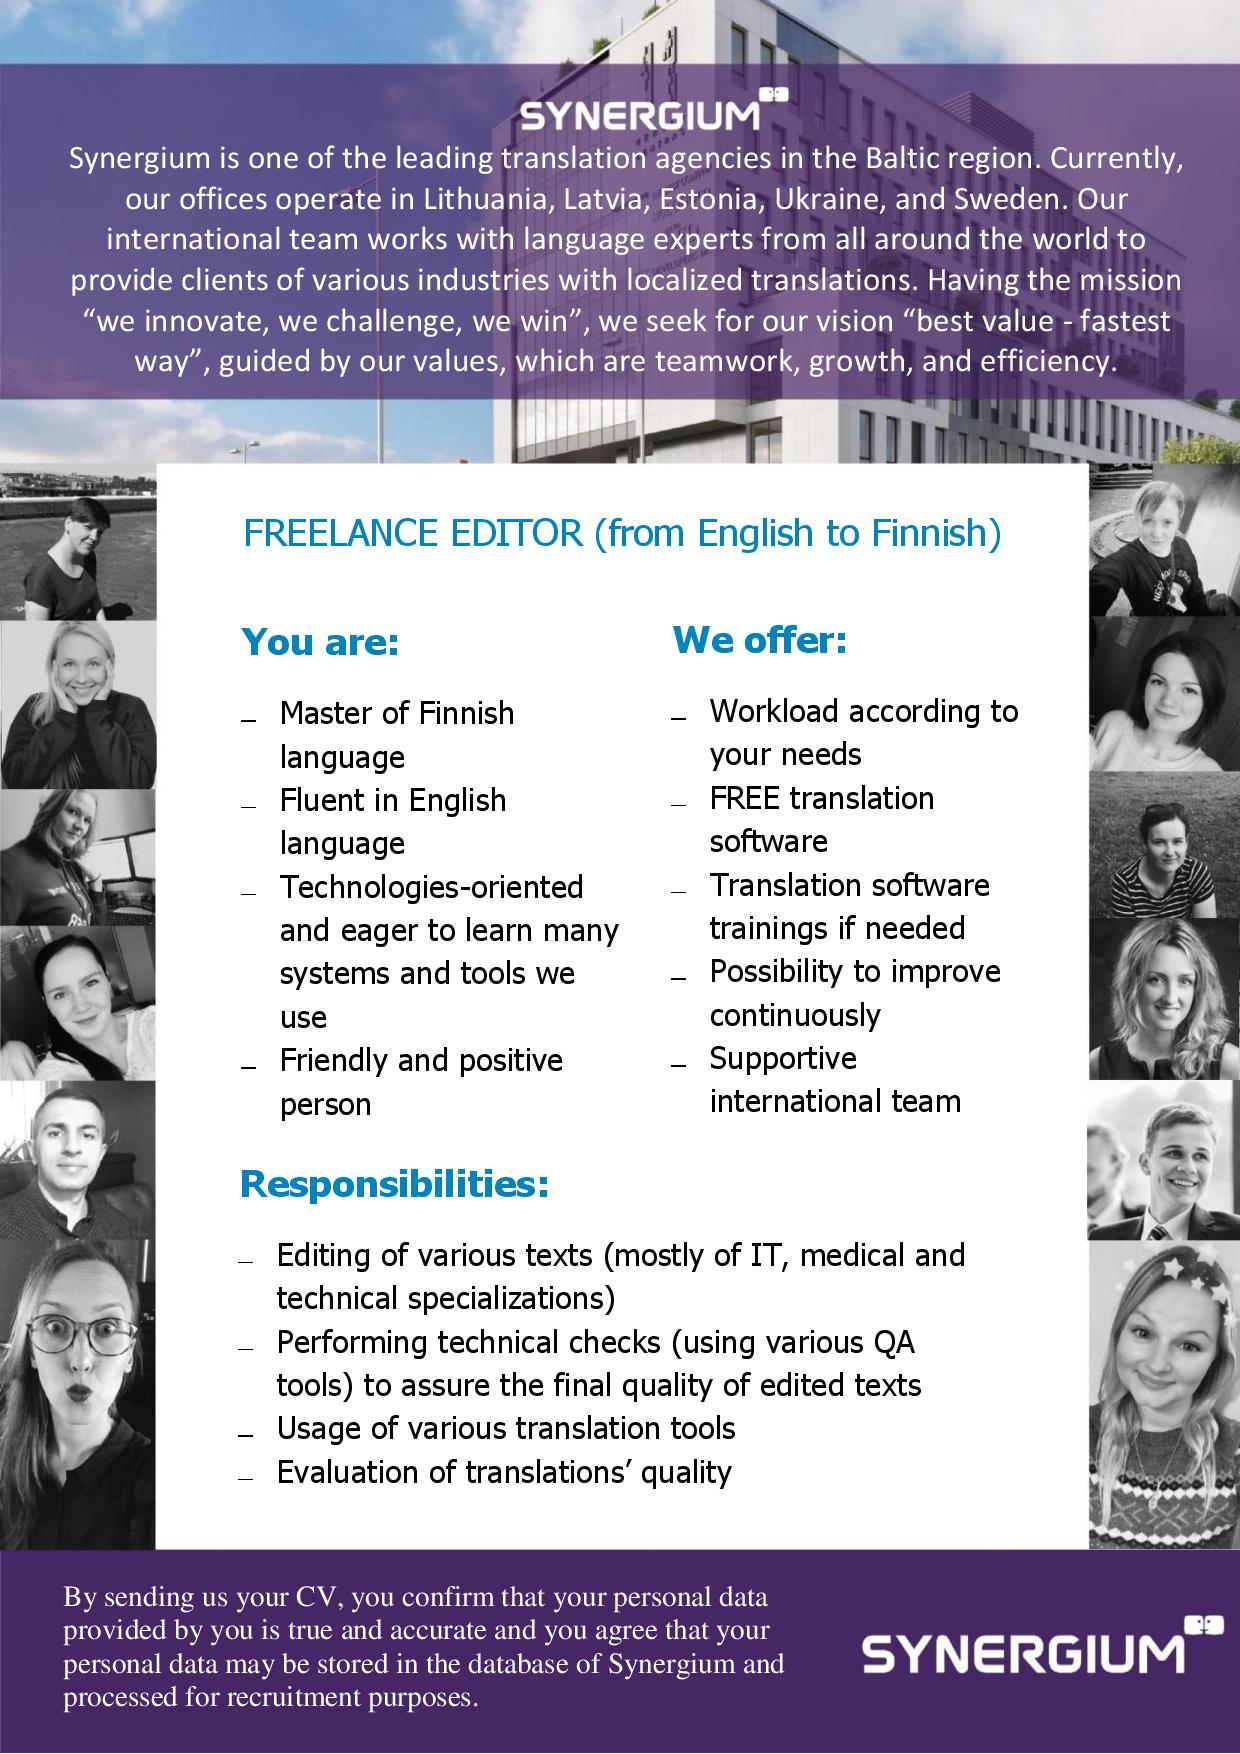 freelance editor from english to finnish job advertisement synergium